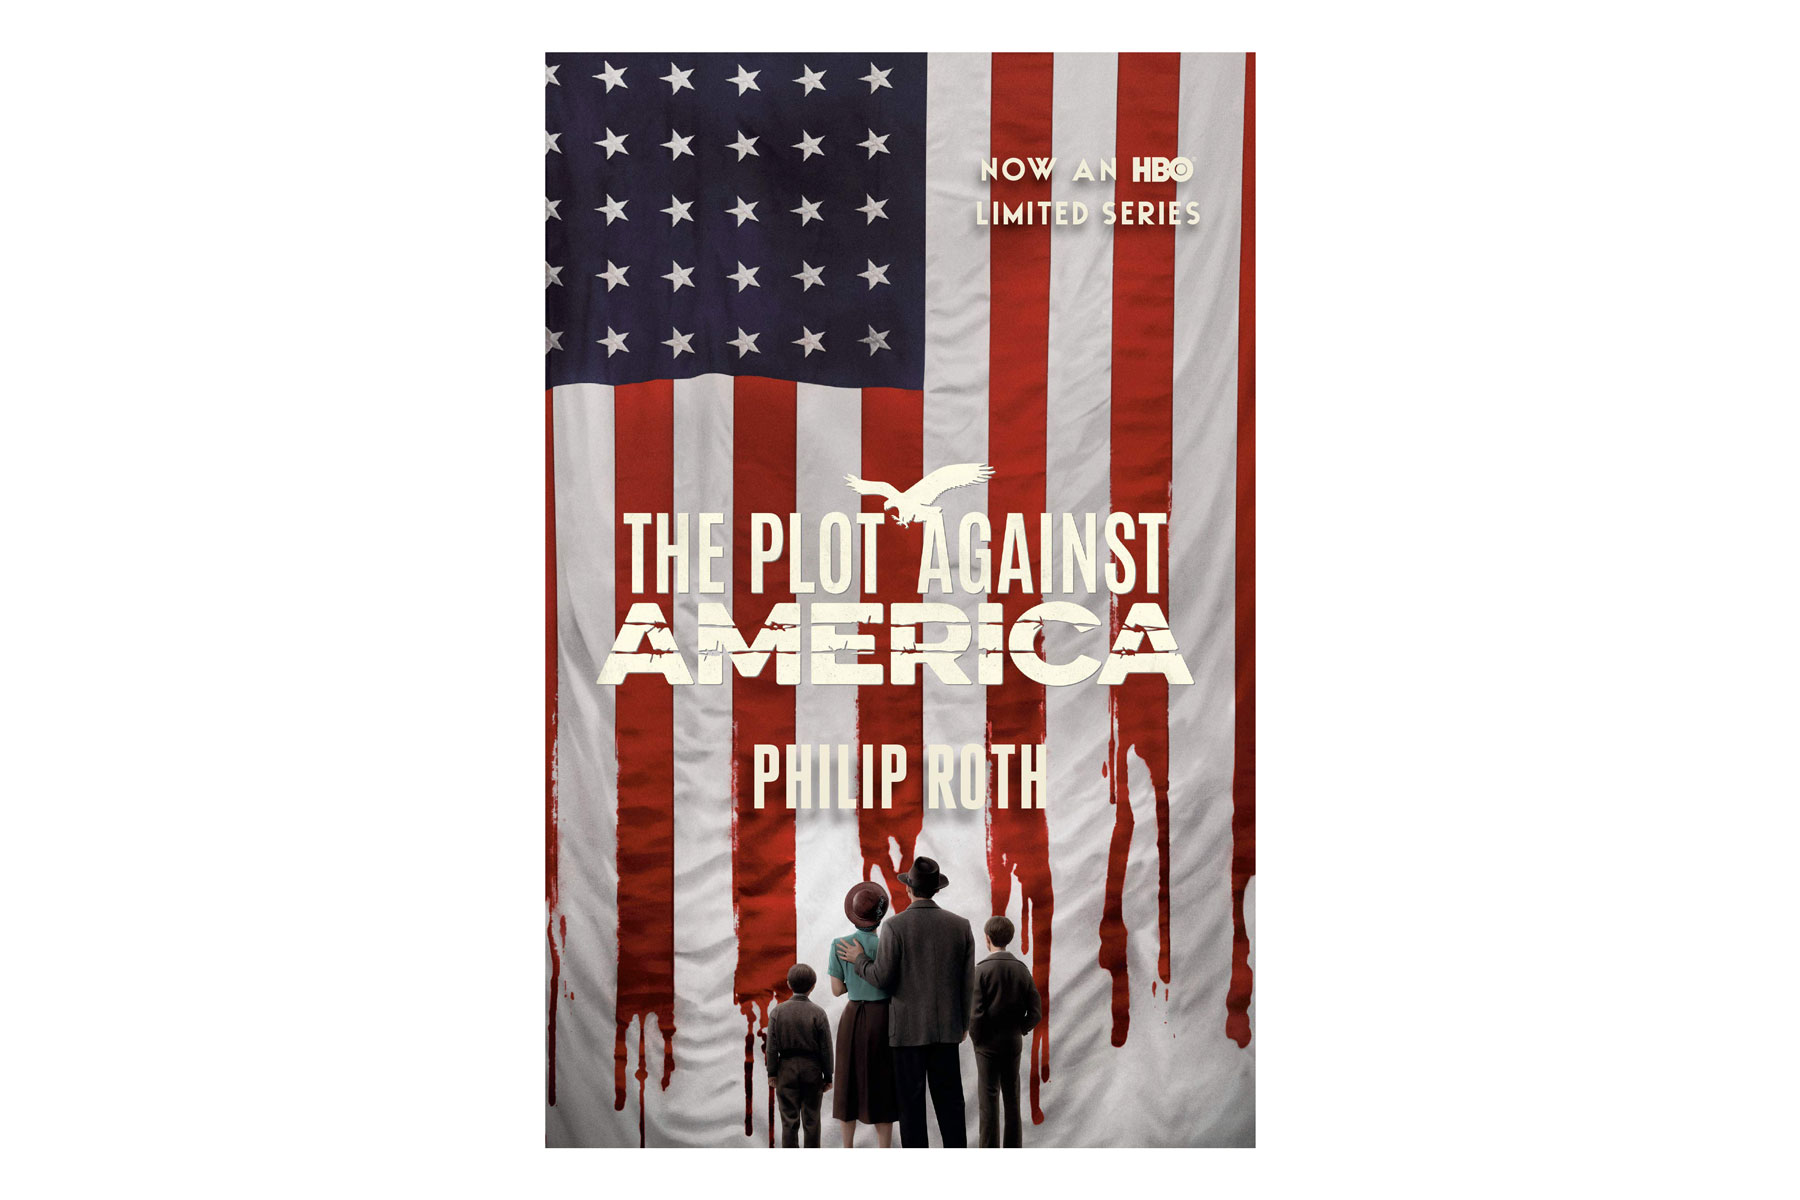 The Plot Against America book